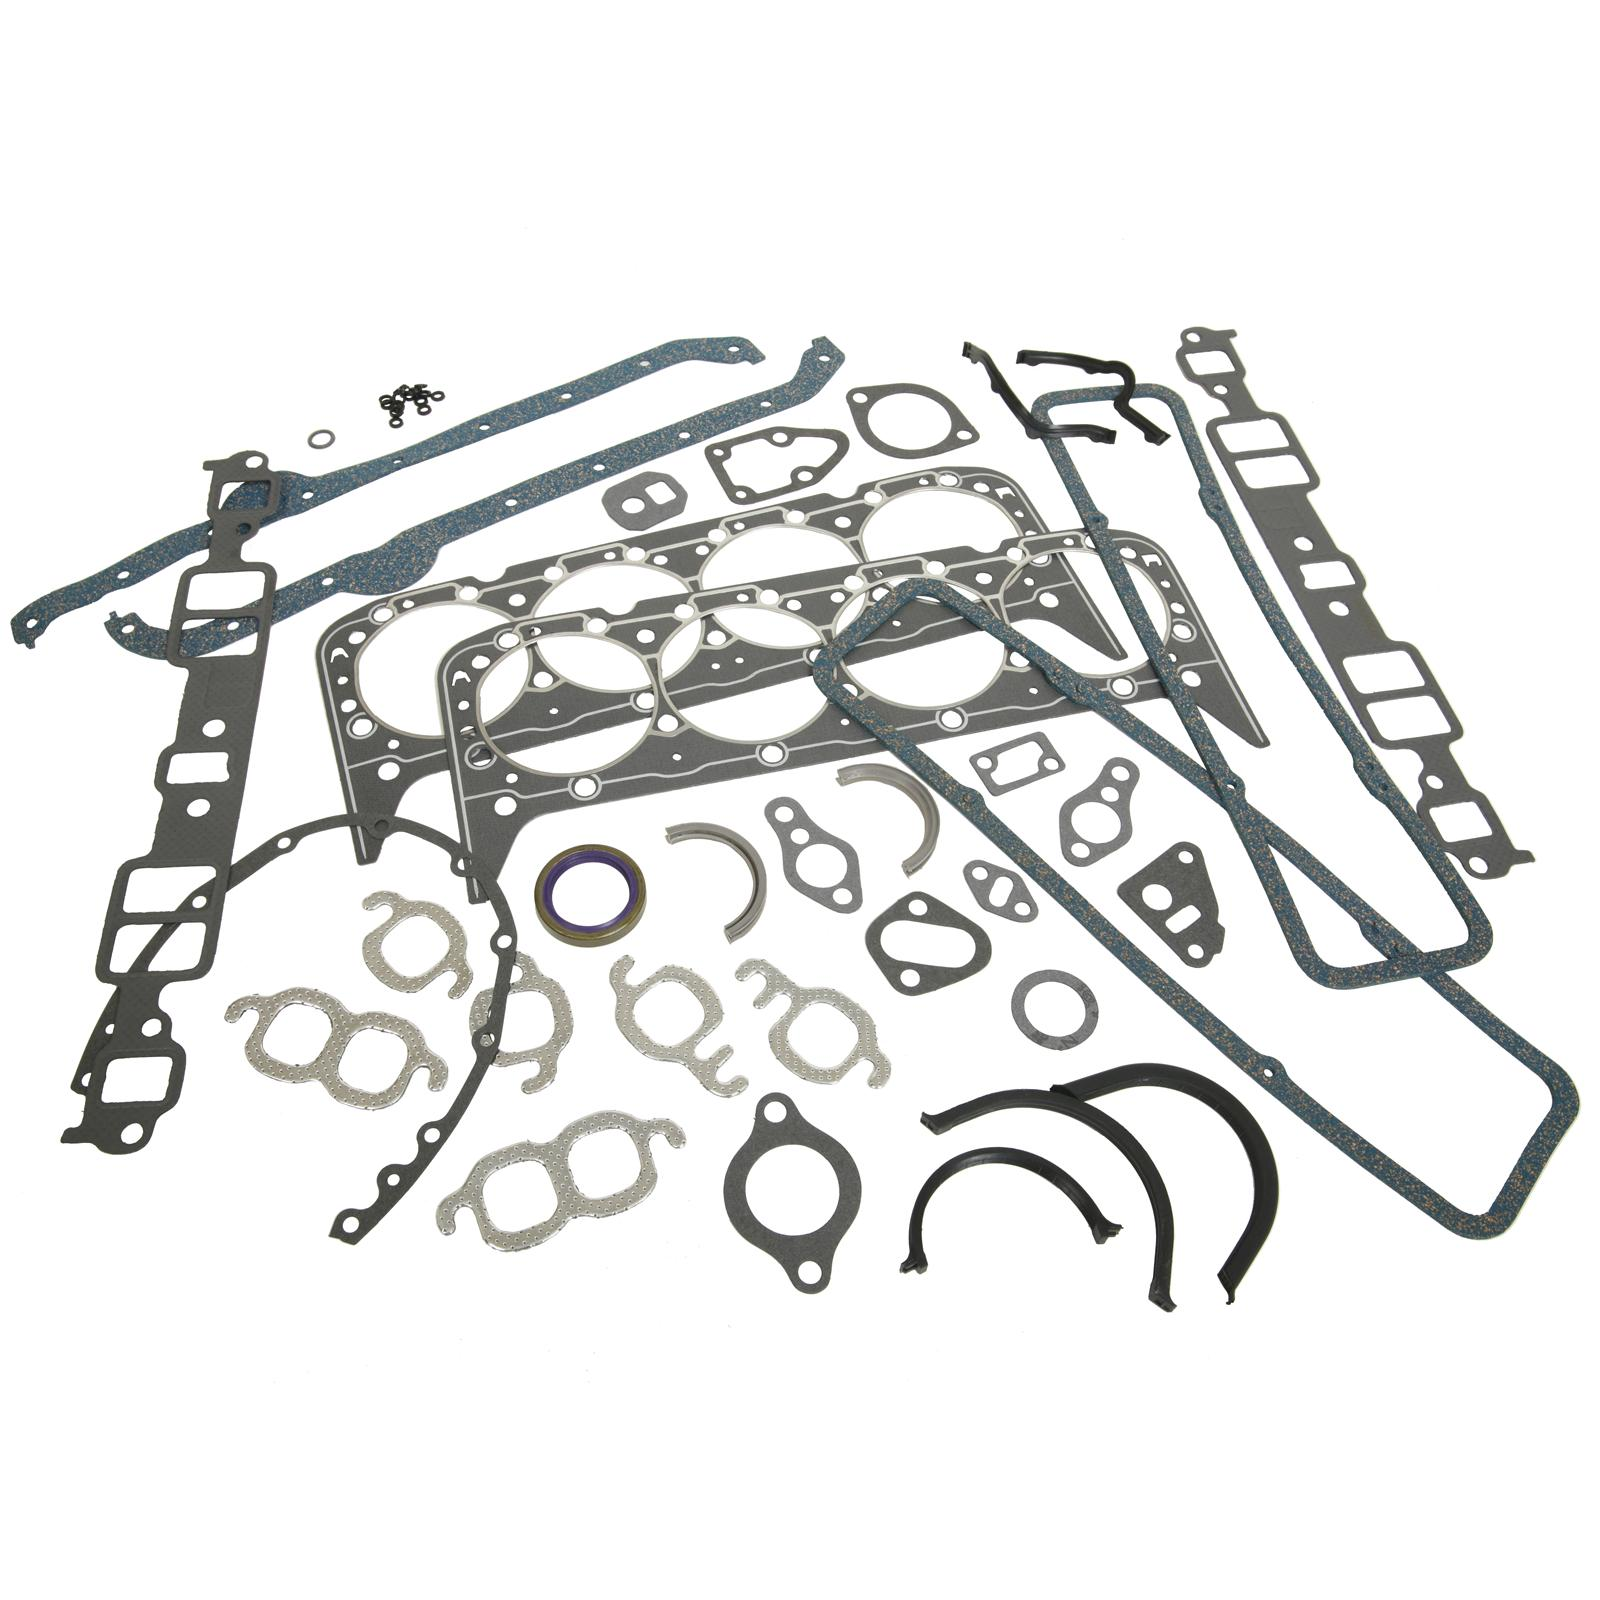 summit racing gasket sets for small chevy sum g2600 free shipping Chevy Nova Front Suspension summit racing gasket sets for small chevy sum g2600 free shipping on orders over 99 at summit racing